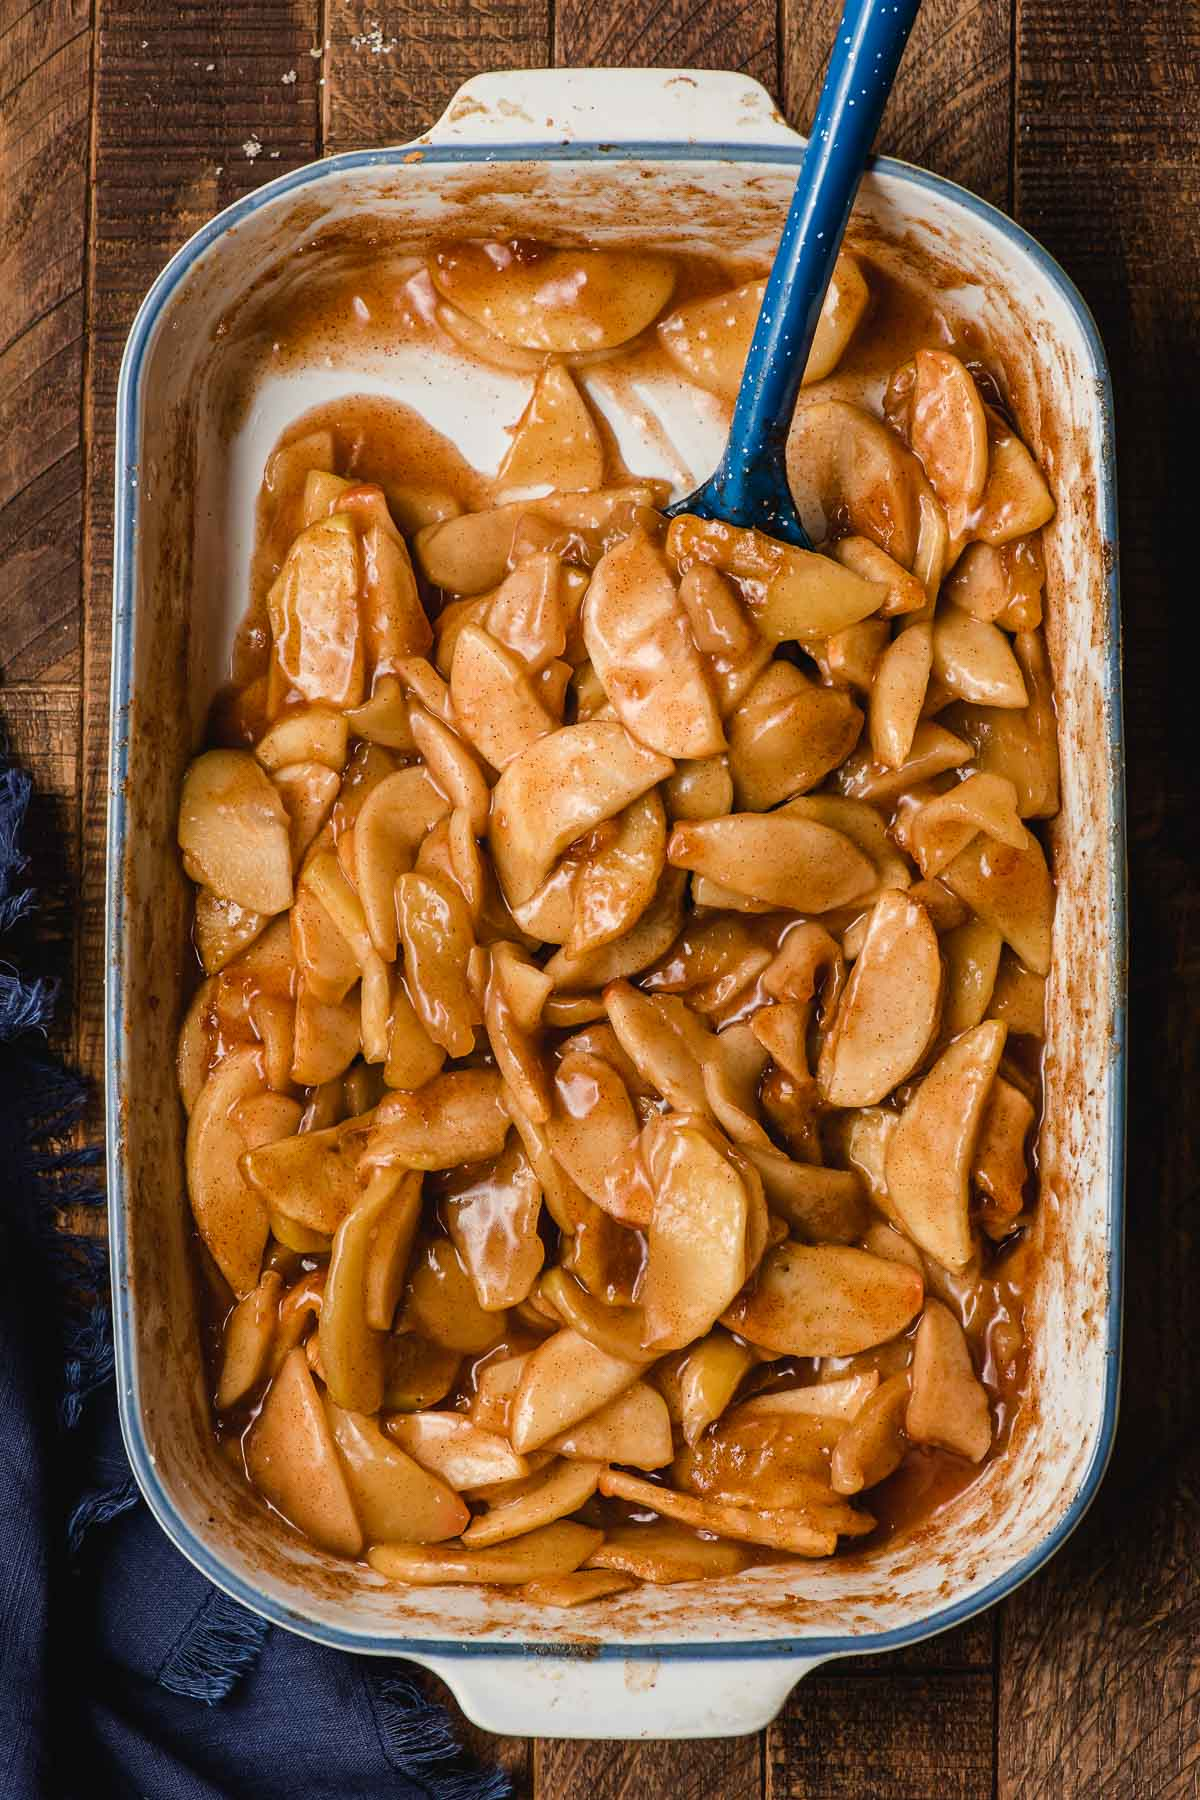 Spoon scooping cinnamon baked apples out of a white casserole dish.